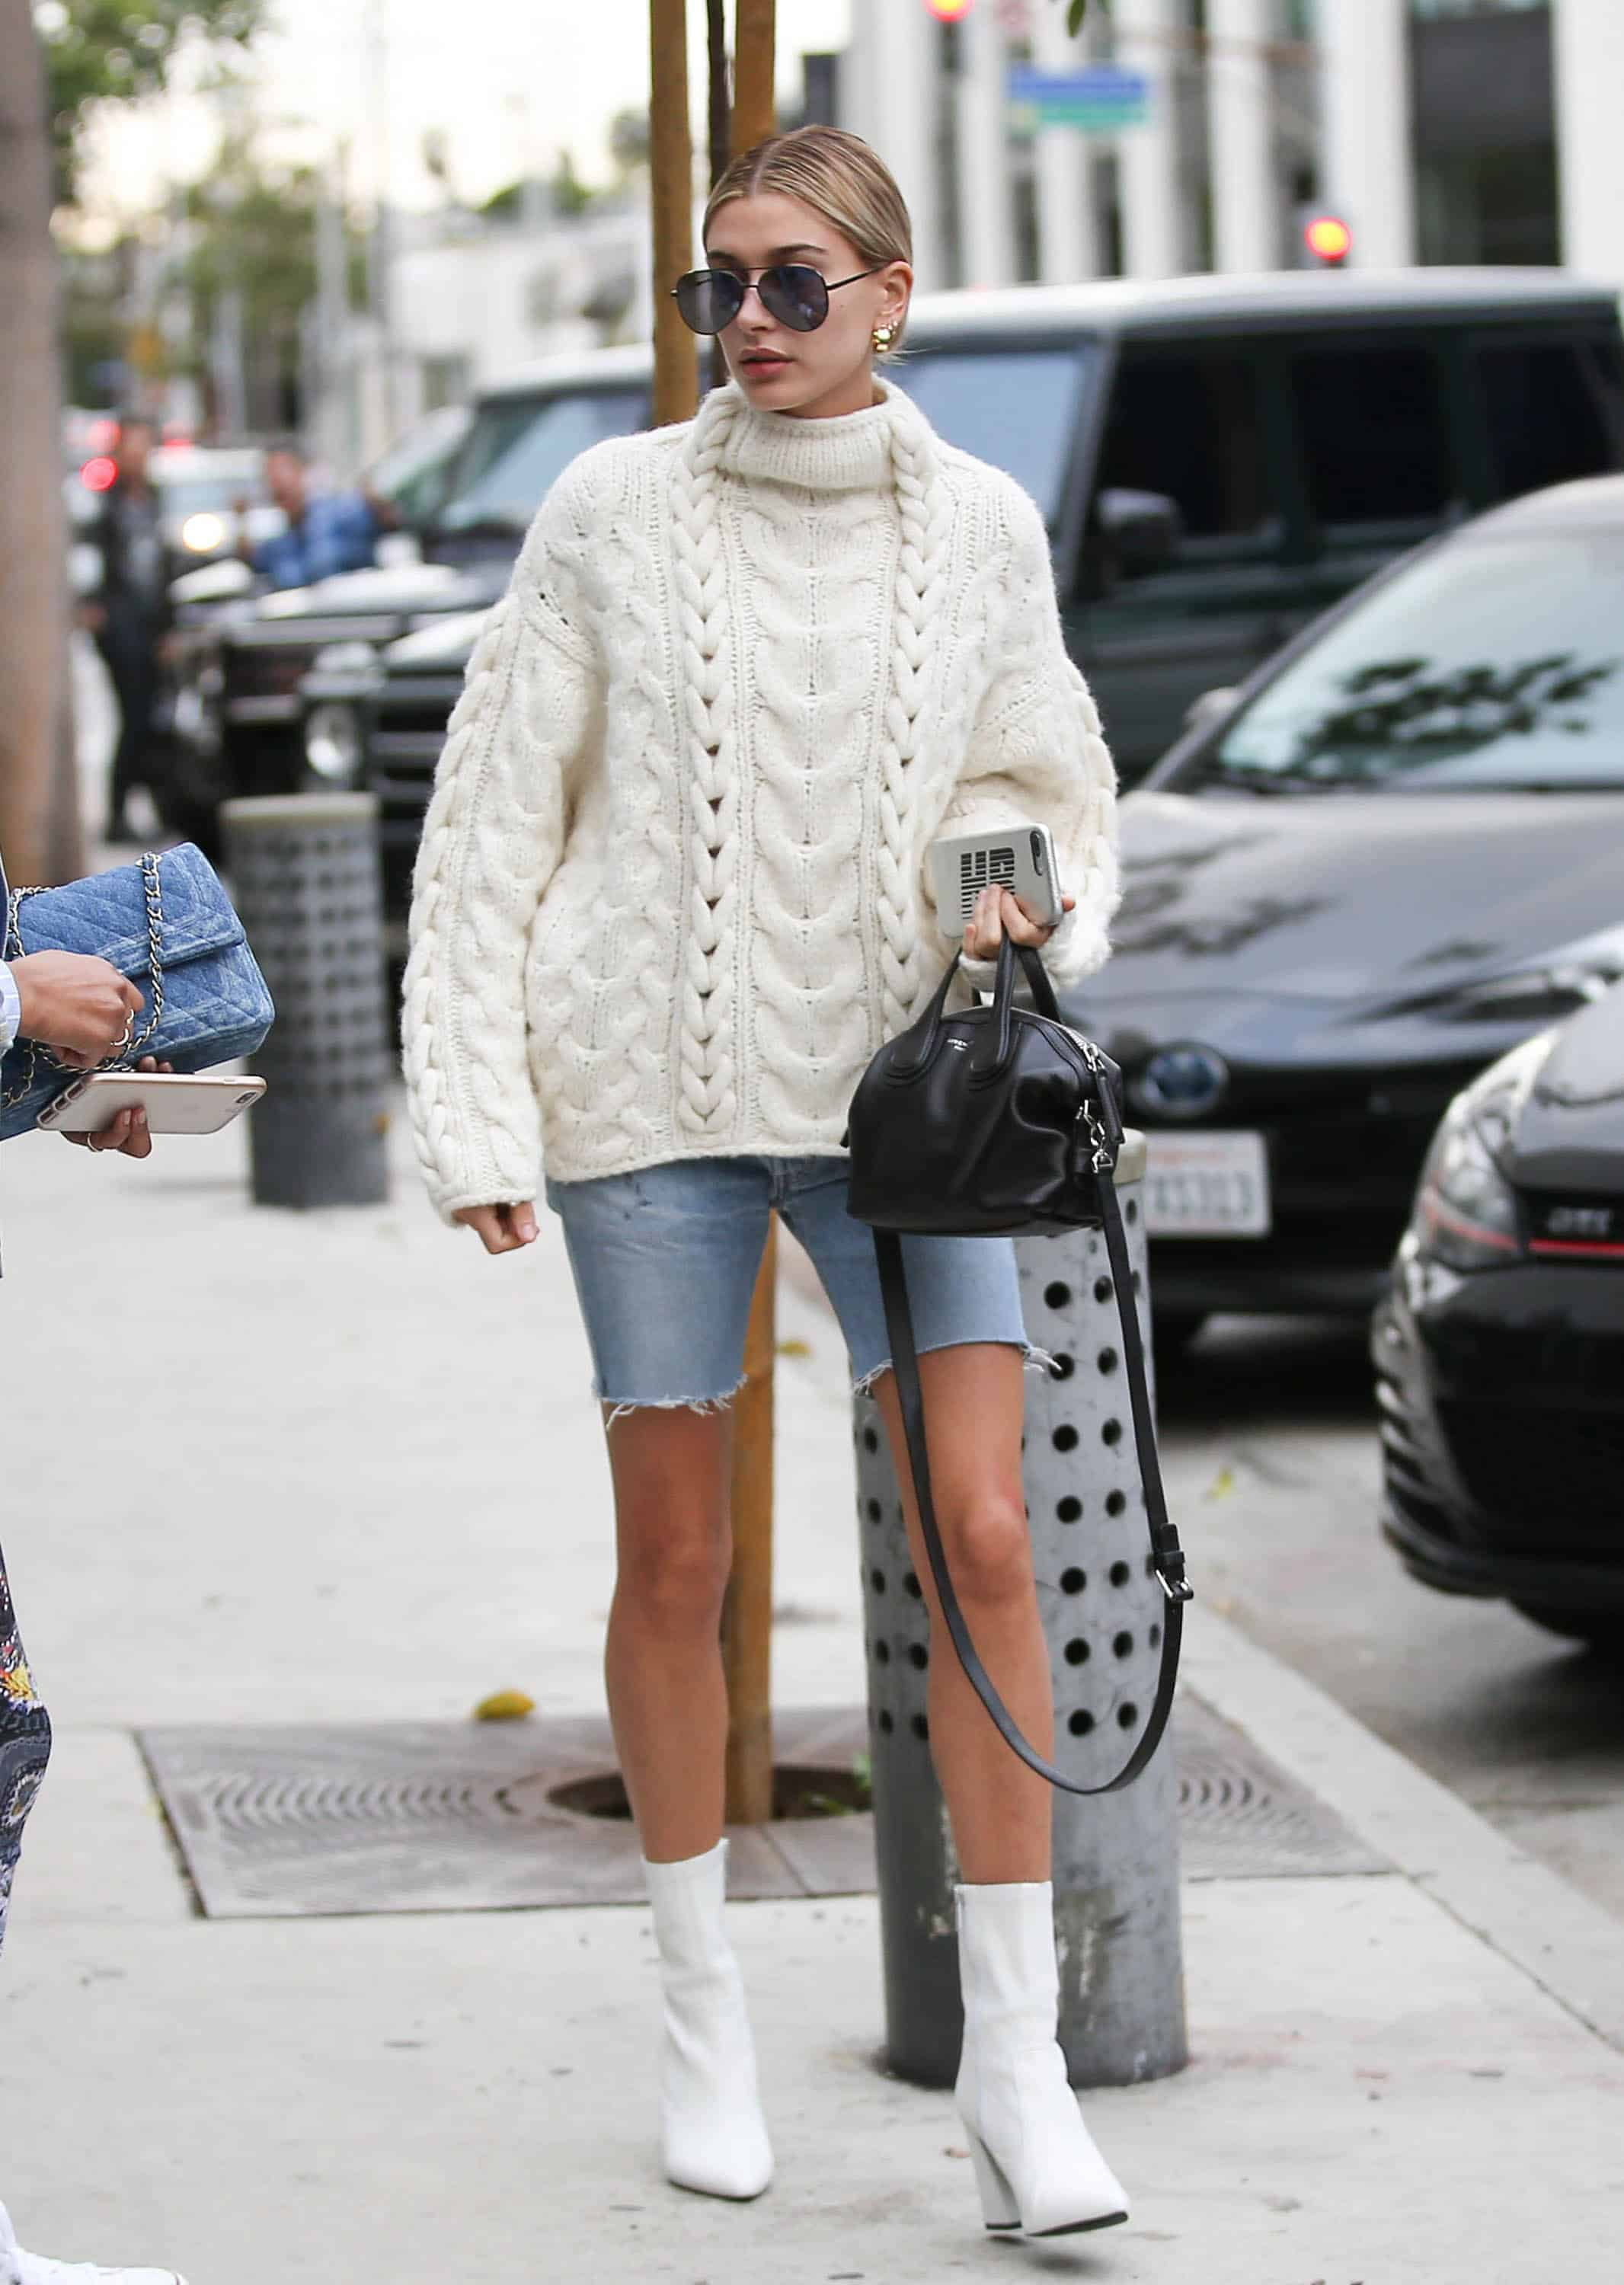 45acf55a50 Hailey Baldwin s Look For Less - Stylish Cravings Style